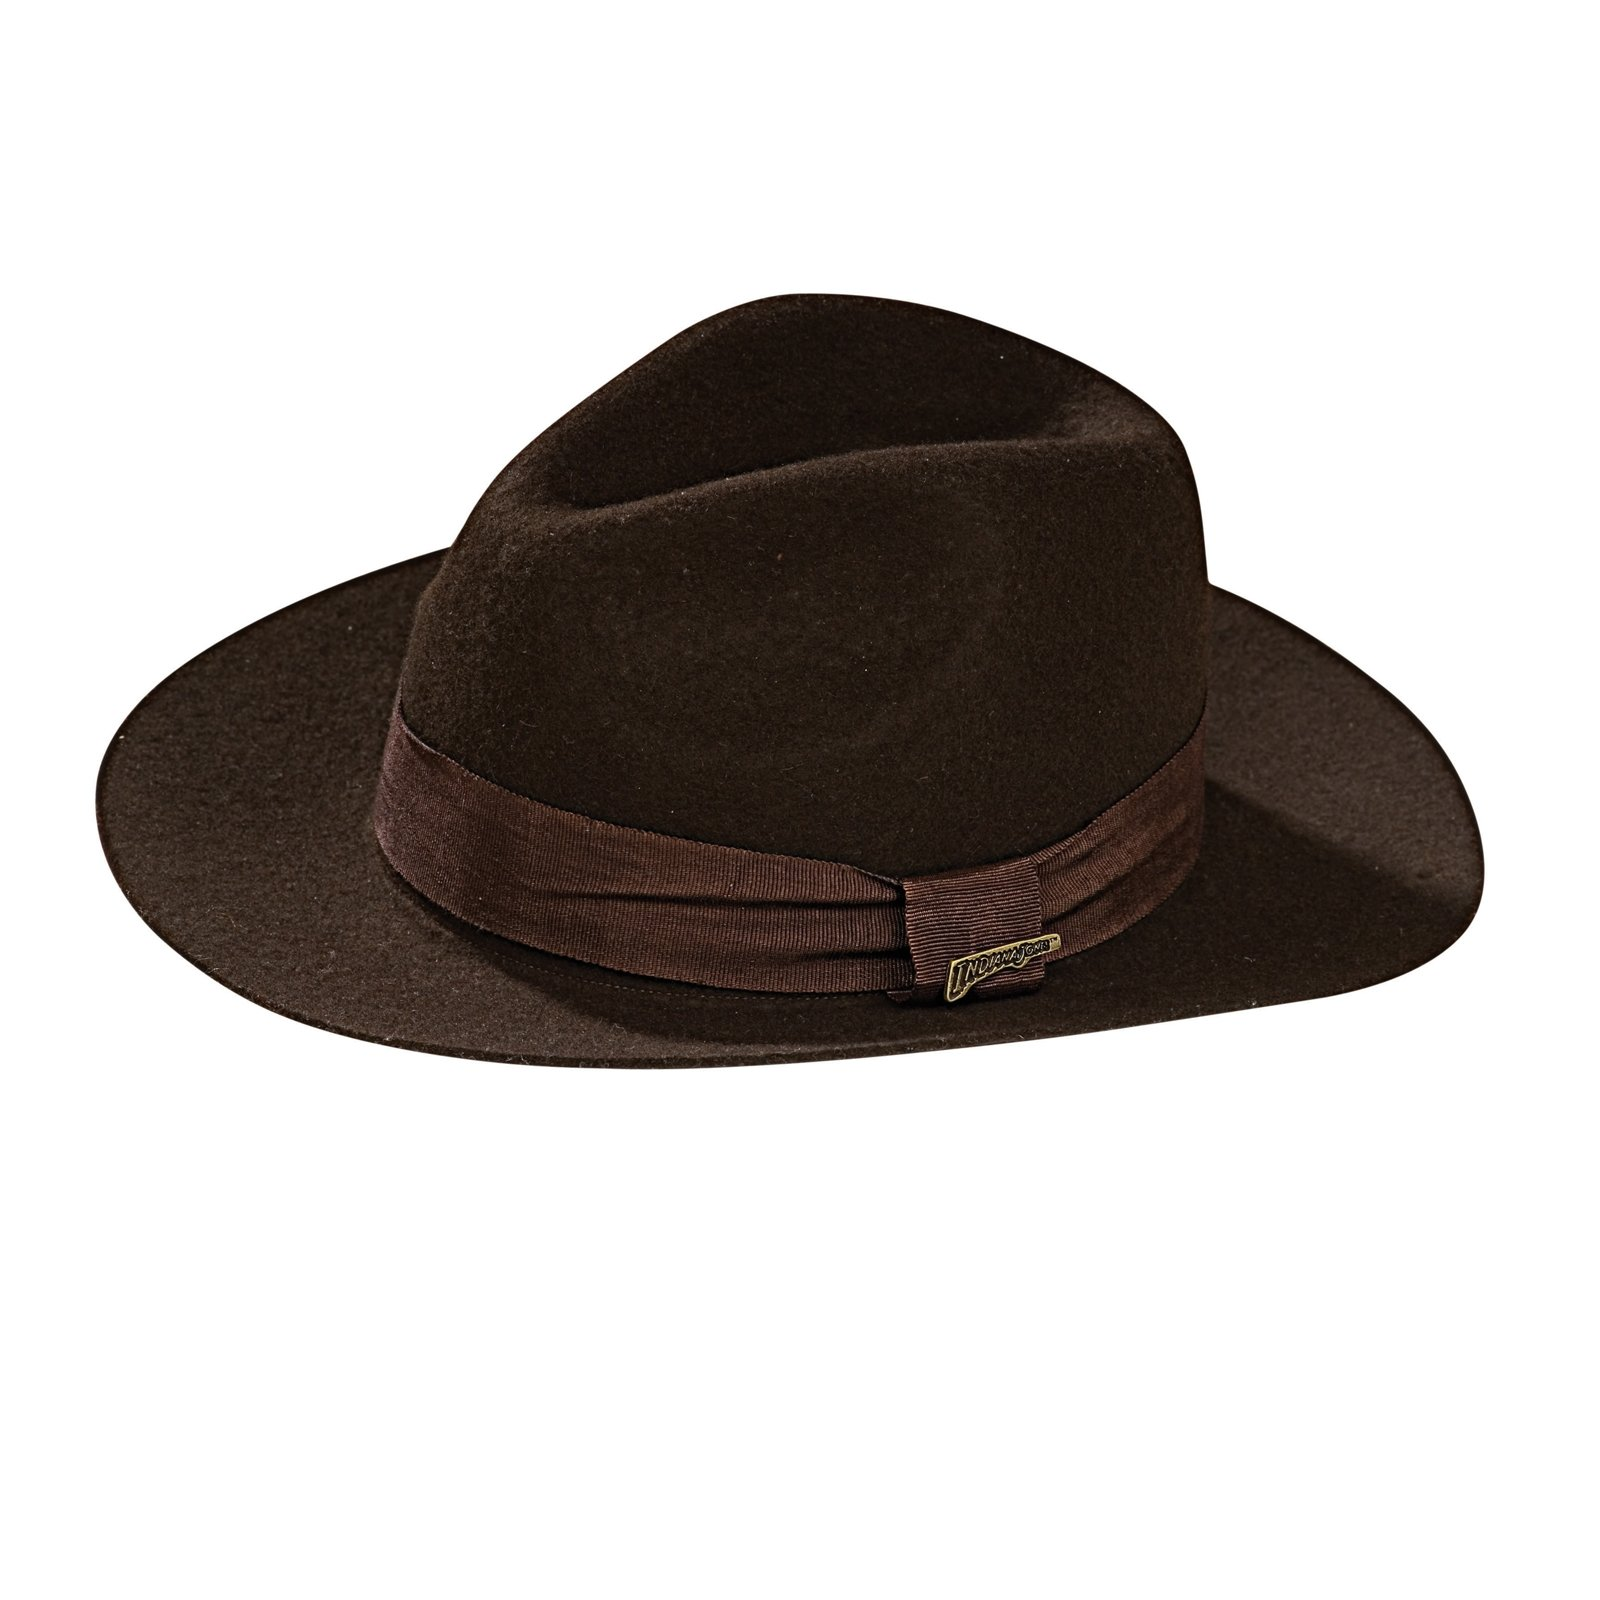 Indiana Jones Deluxe Hat Child